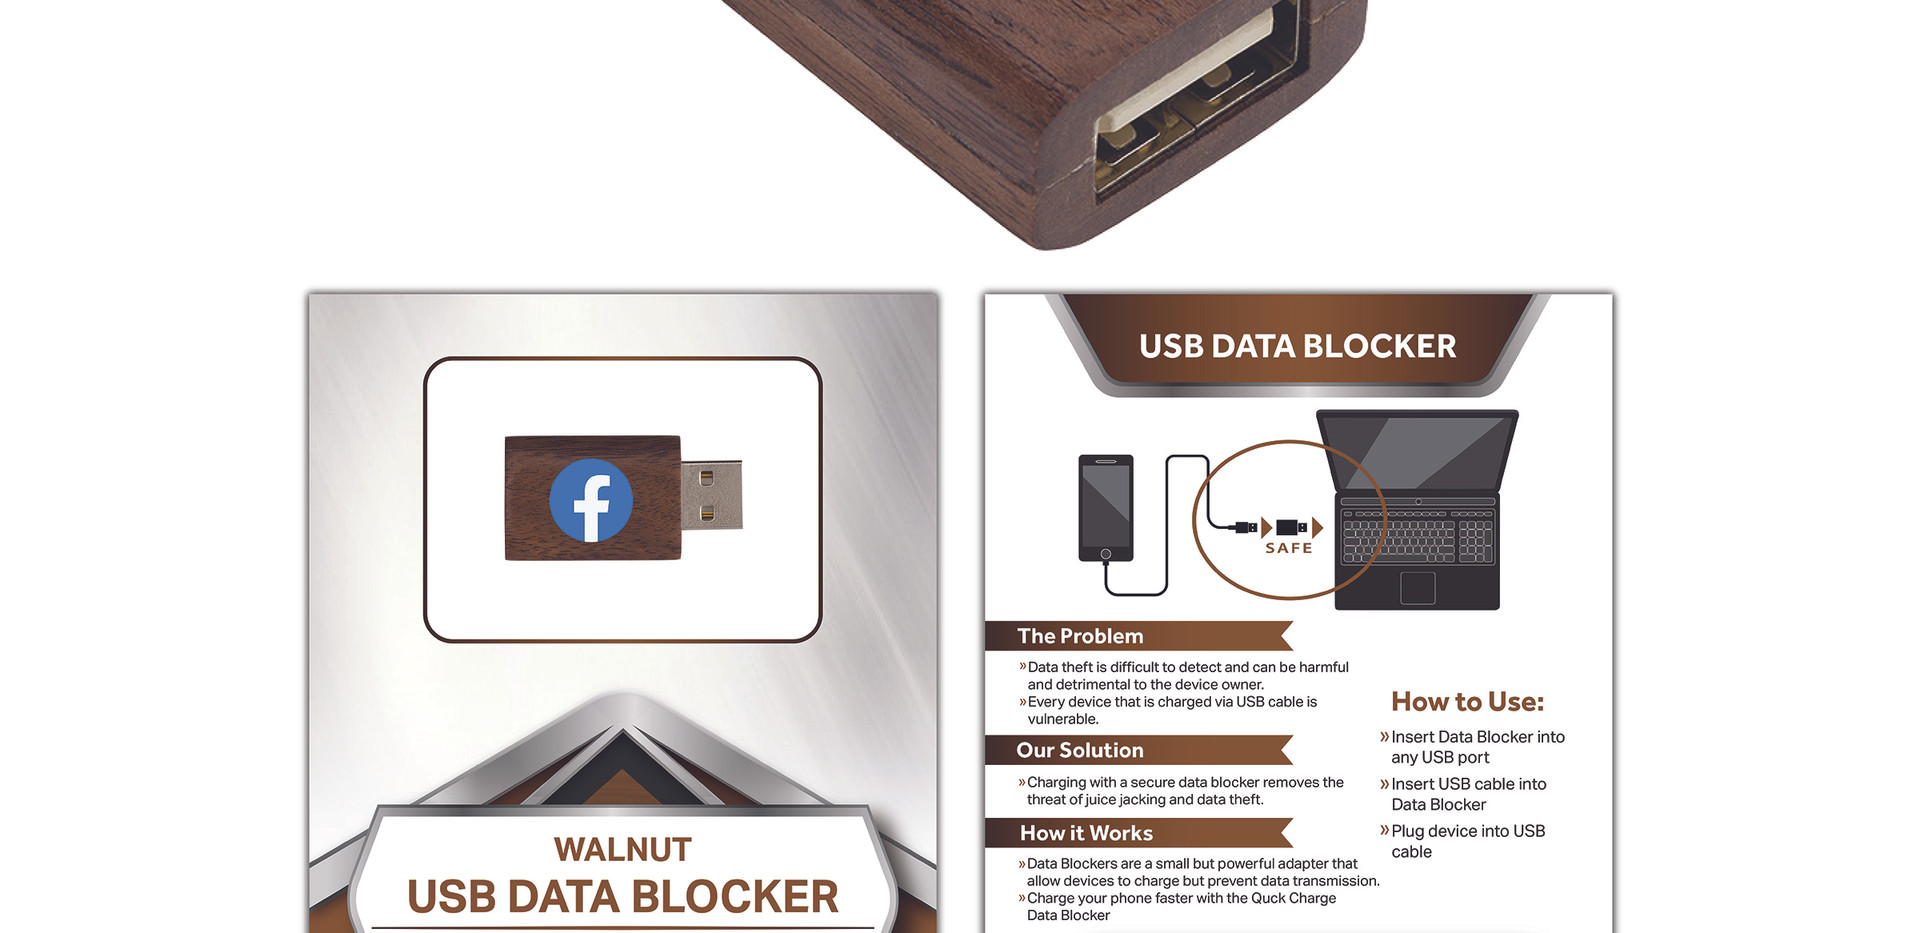 Facebook USDB Walnut Standard Card.jpg